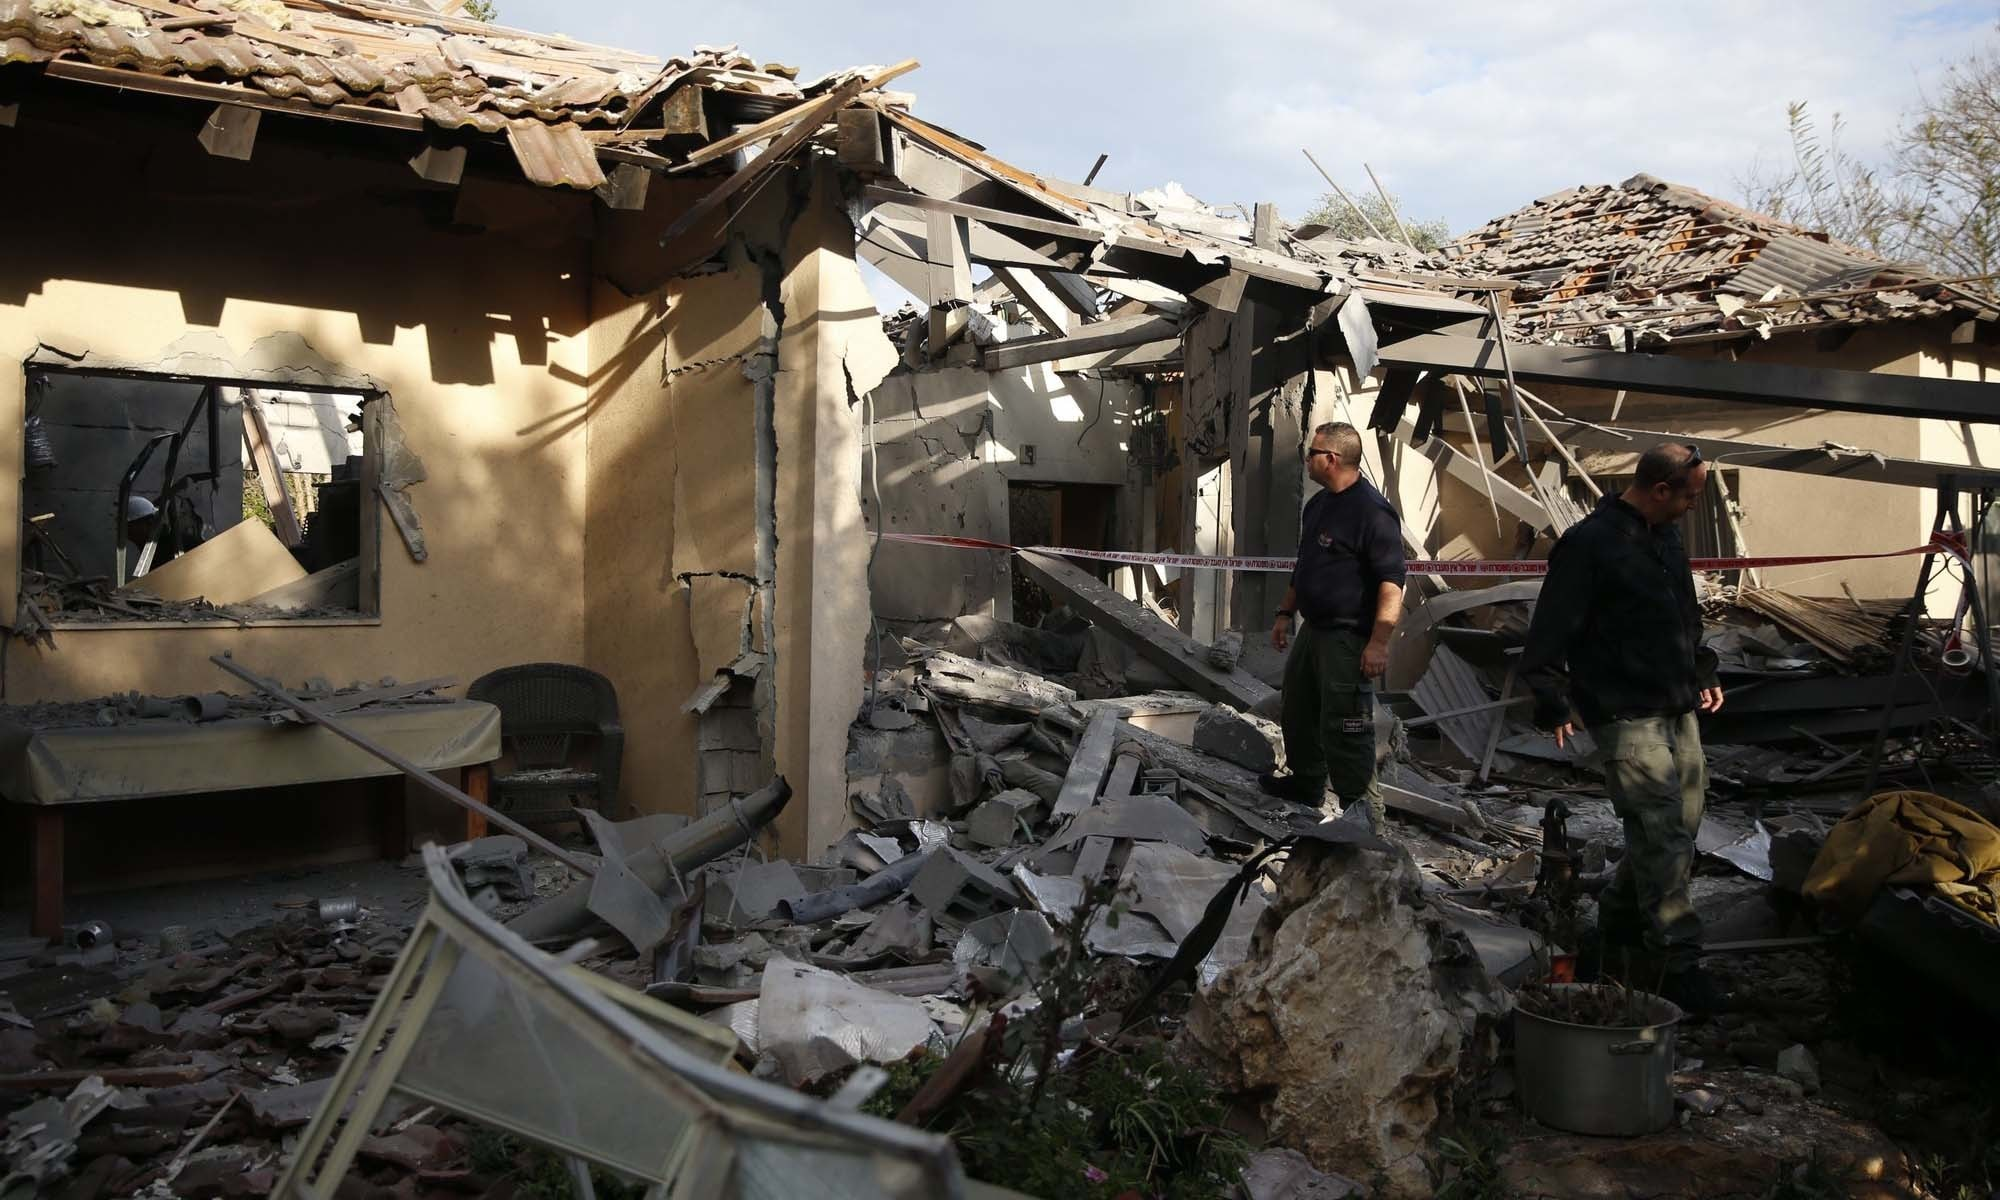 Police officers inspect the damage to a house hit by a rocket in Mishmeret, central Israel, on Monday, March 25, 2019. — AP